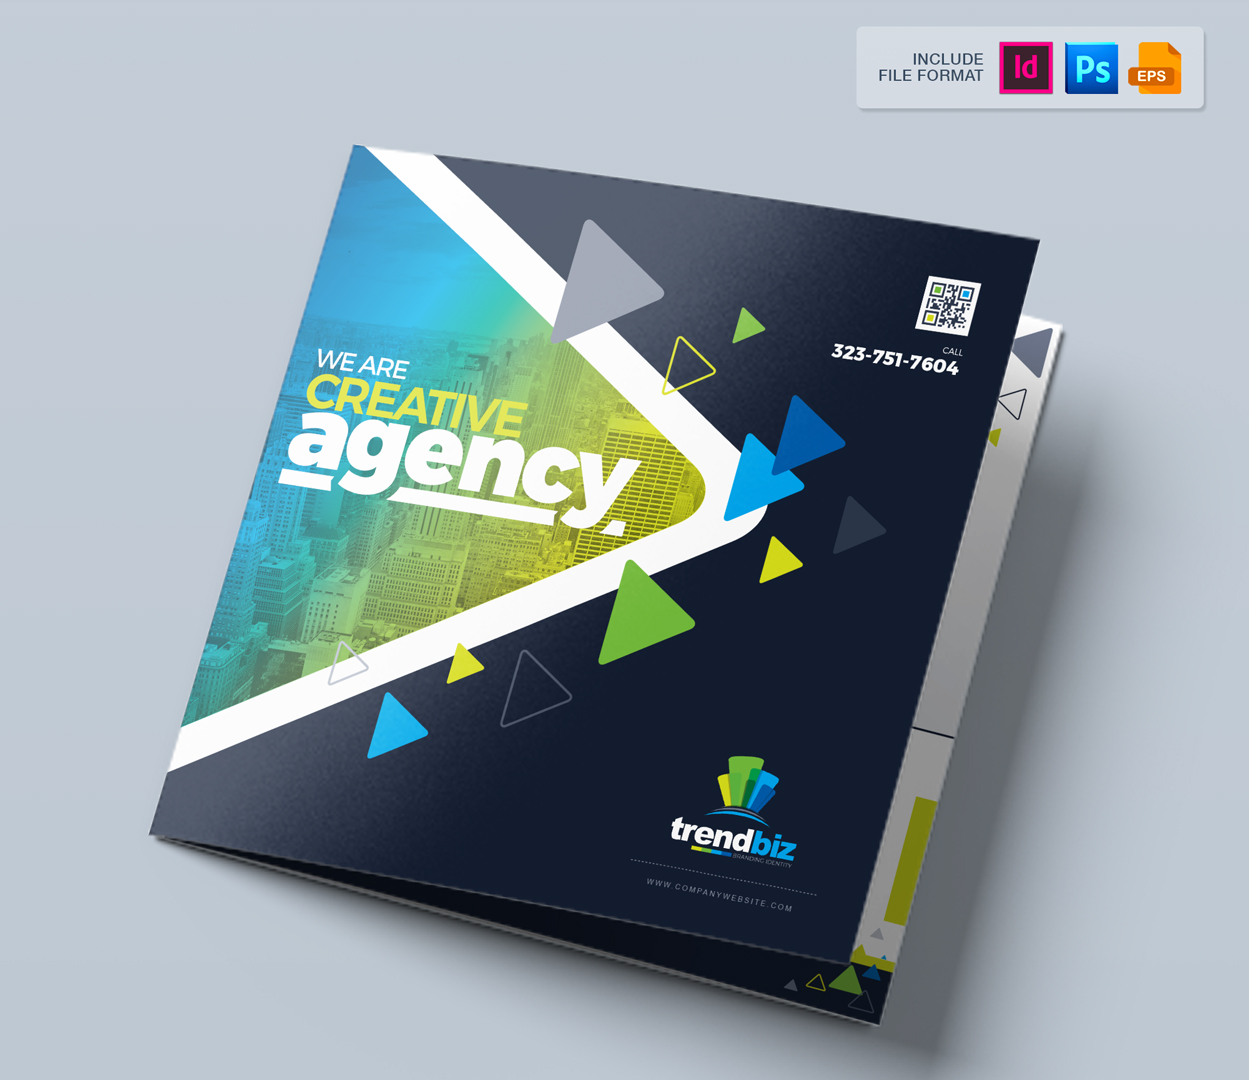 Square and Tall Tri-Fold Brochure | InDesign, PSD and EPS File Formats Corporate Identity